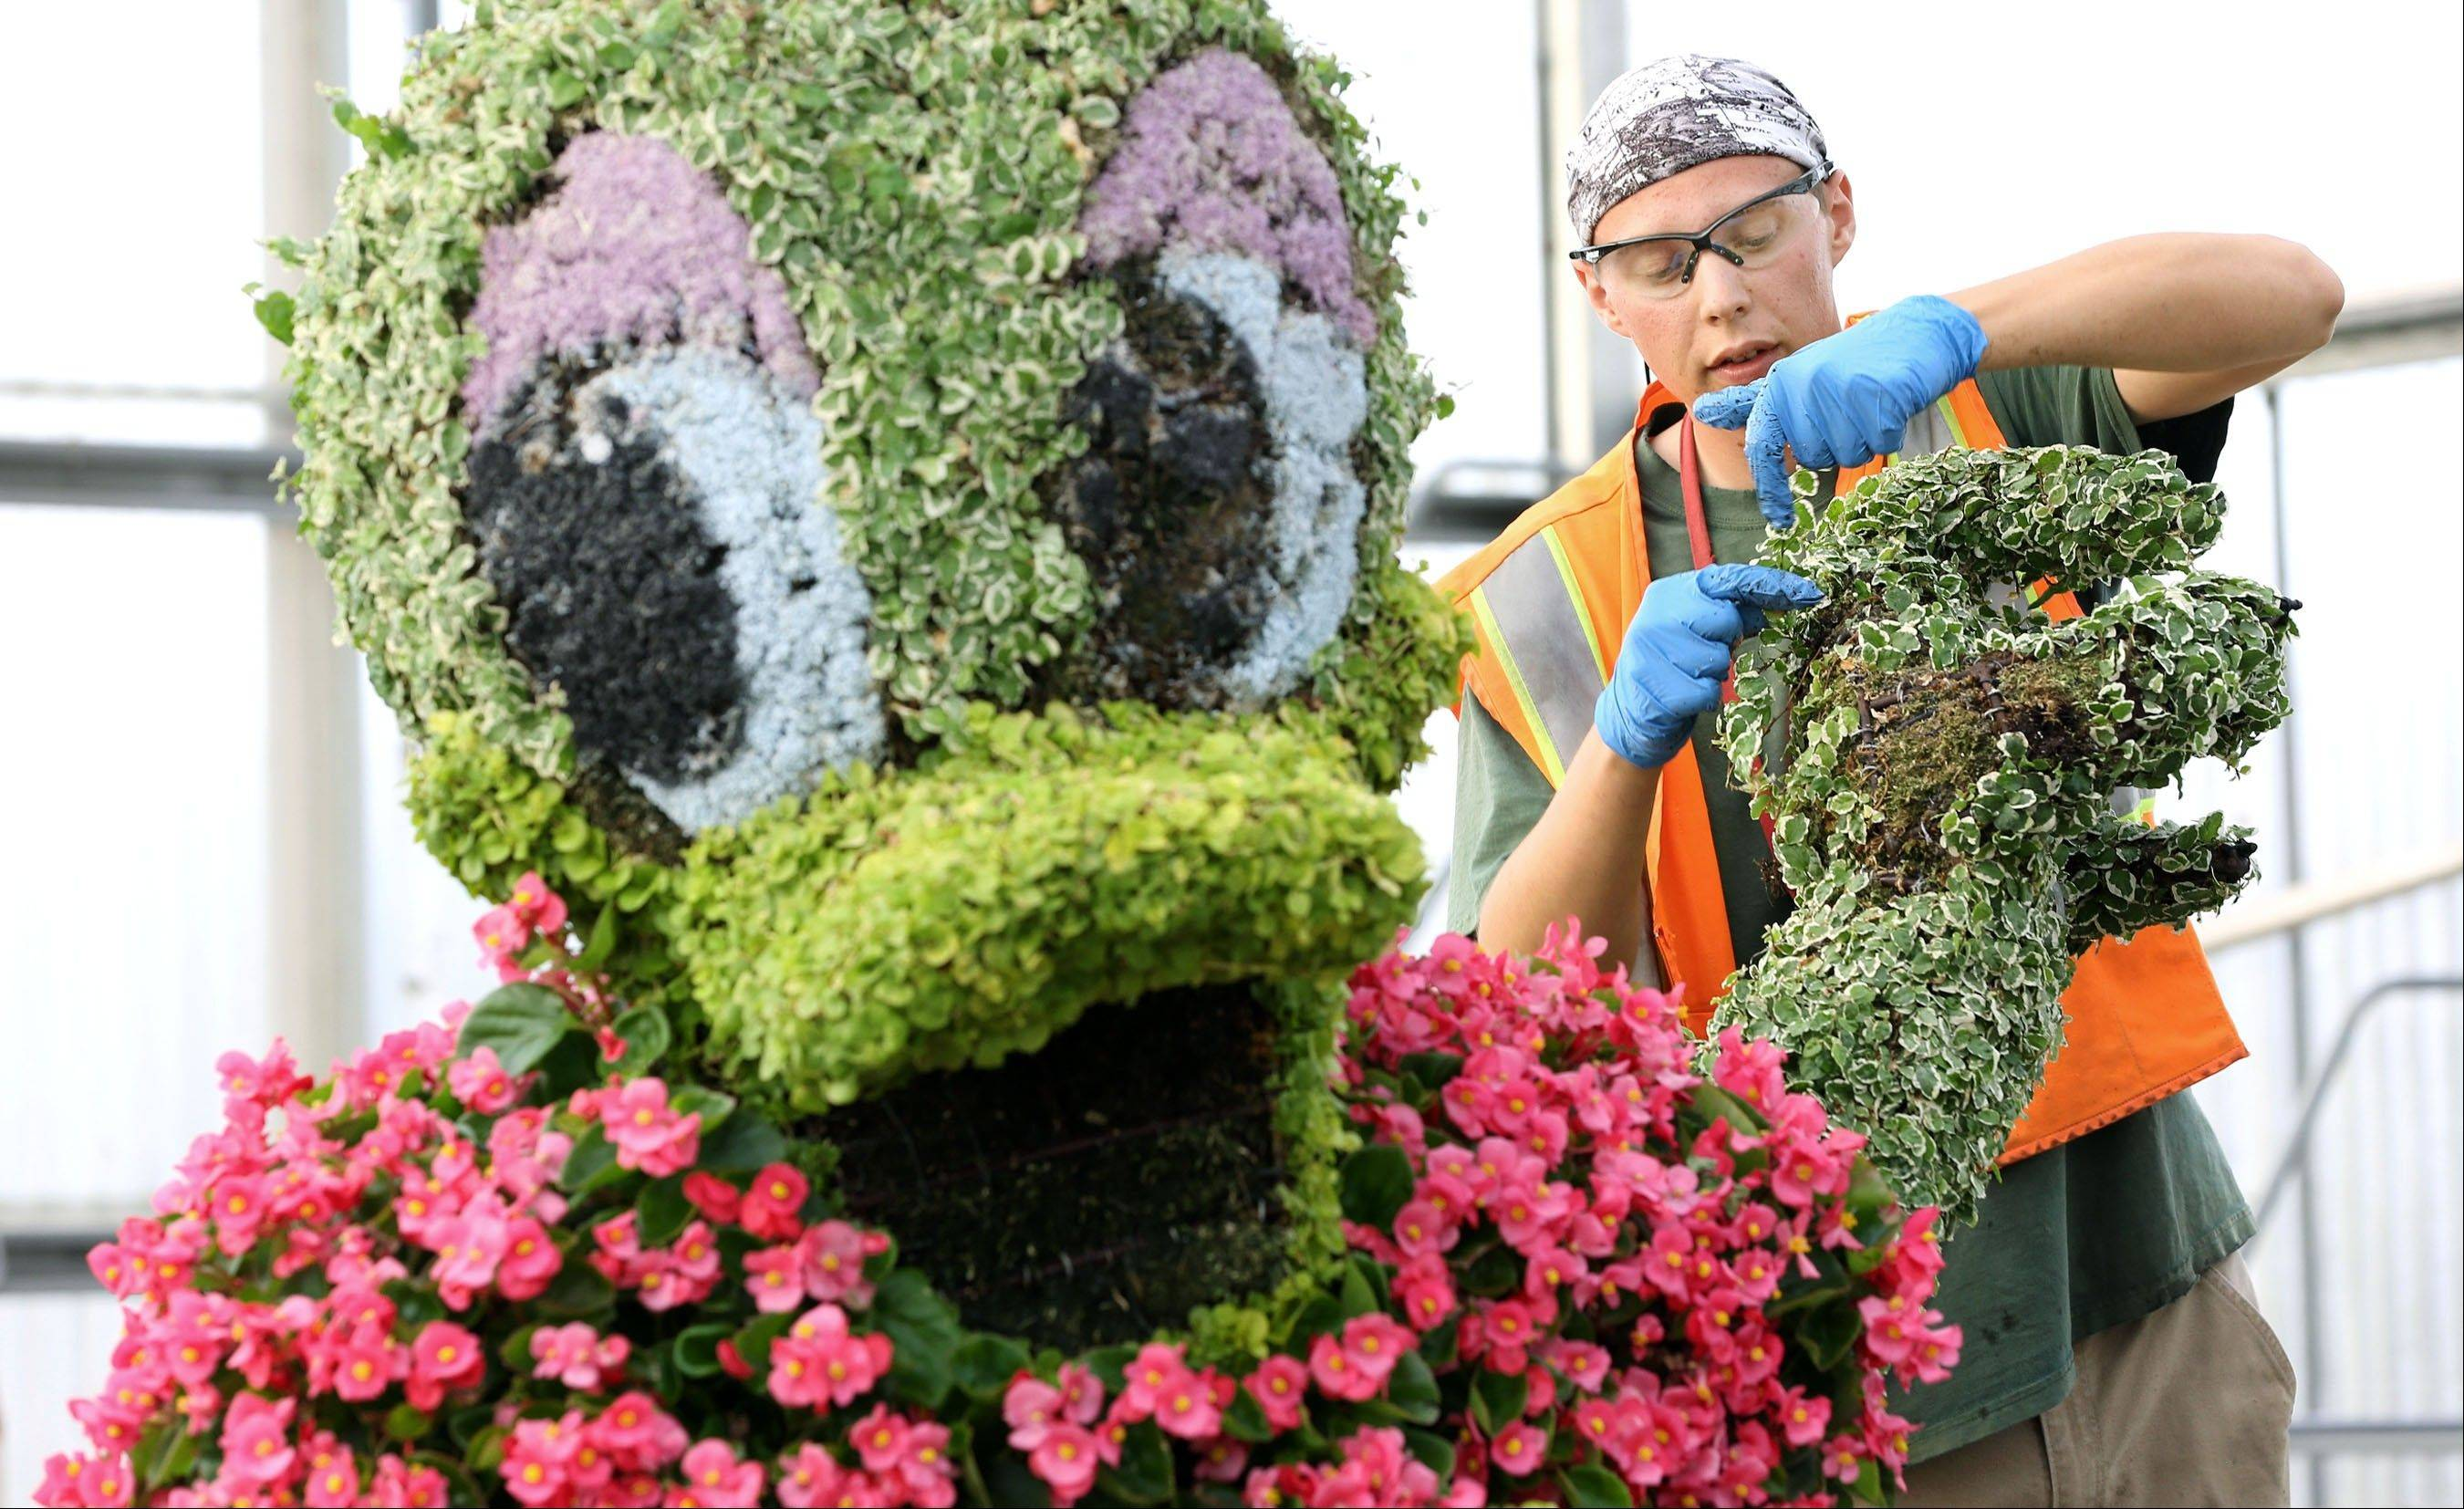 A topiary specialist works on a Daisy Duck topiary at the Epcot front entrance during the 20th Epcot International Flower & Garden Festival at Walt Disney World Resort in Lake Buena Vista, Fla.